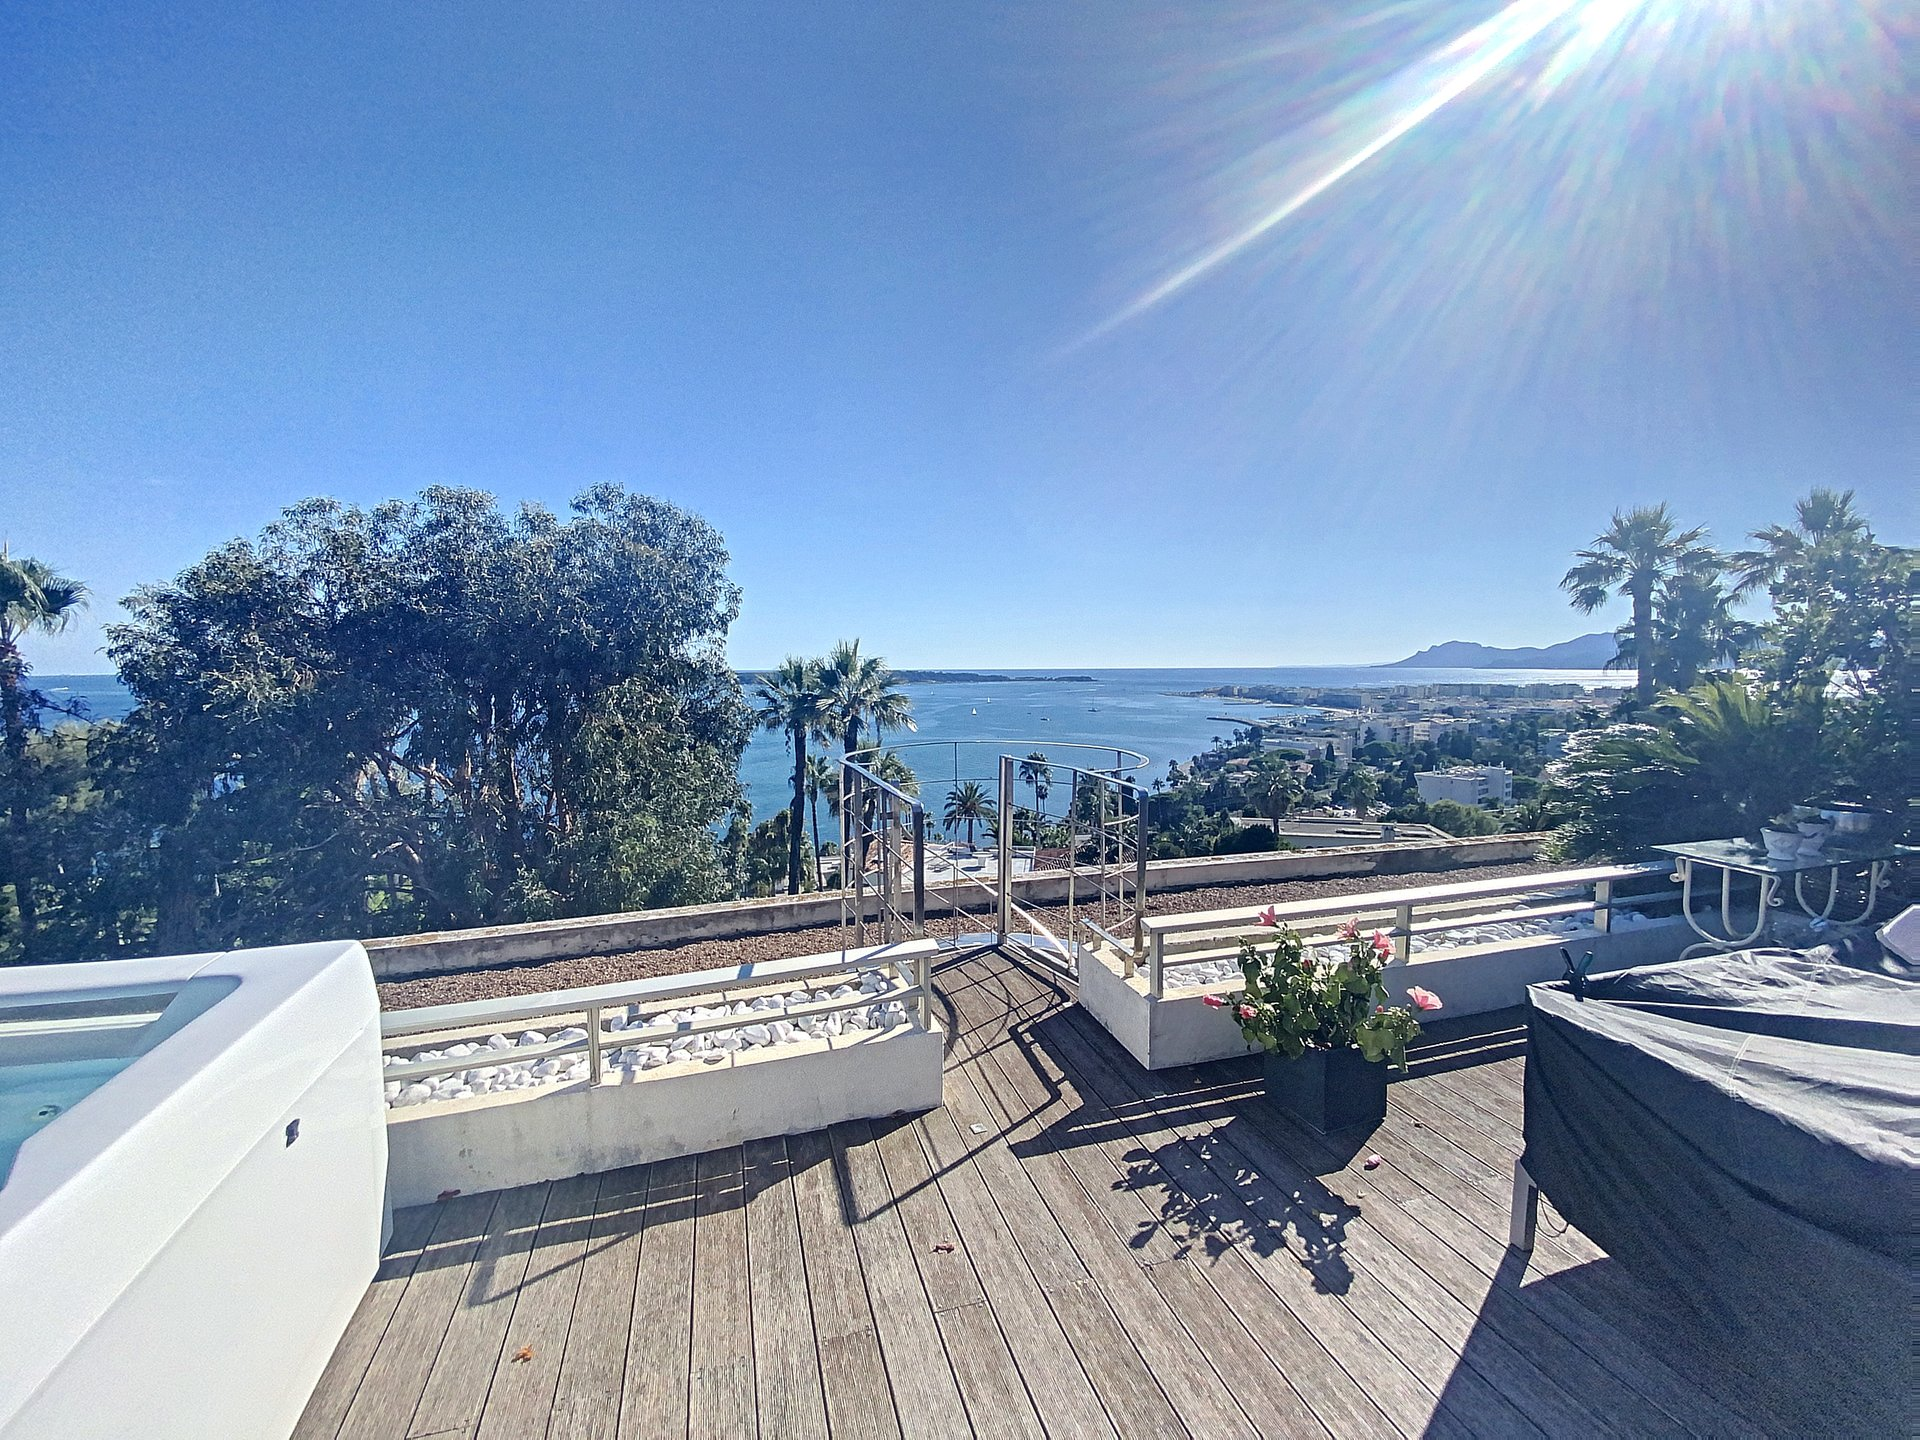 Cannes Californie penthouse 147 m2 terrace 150 m2 sea view